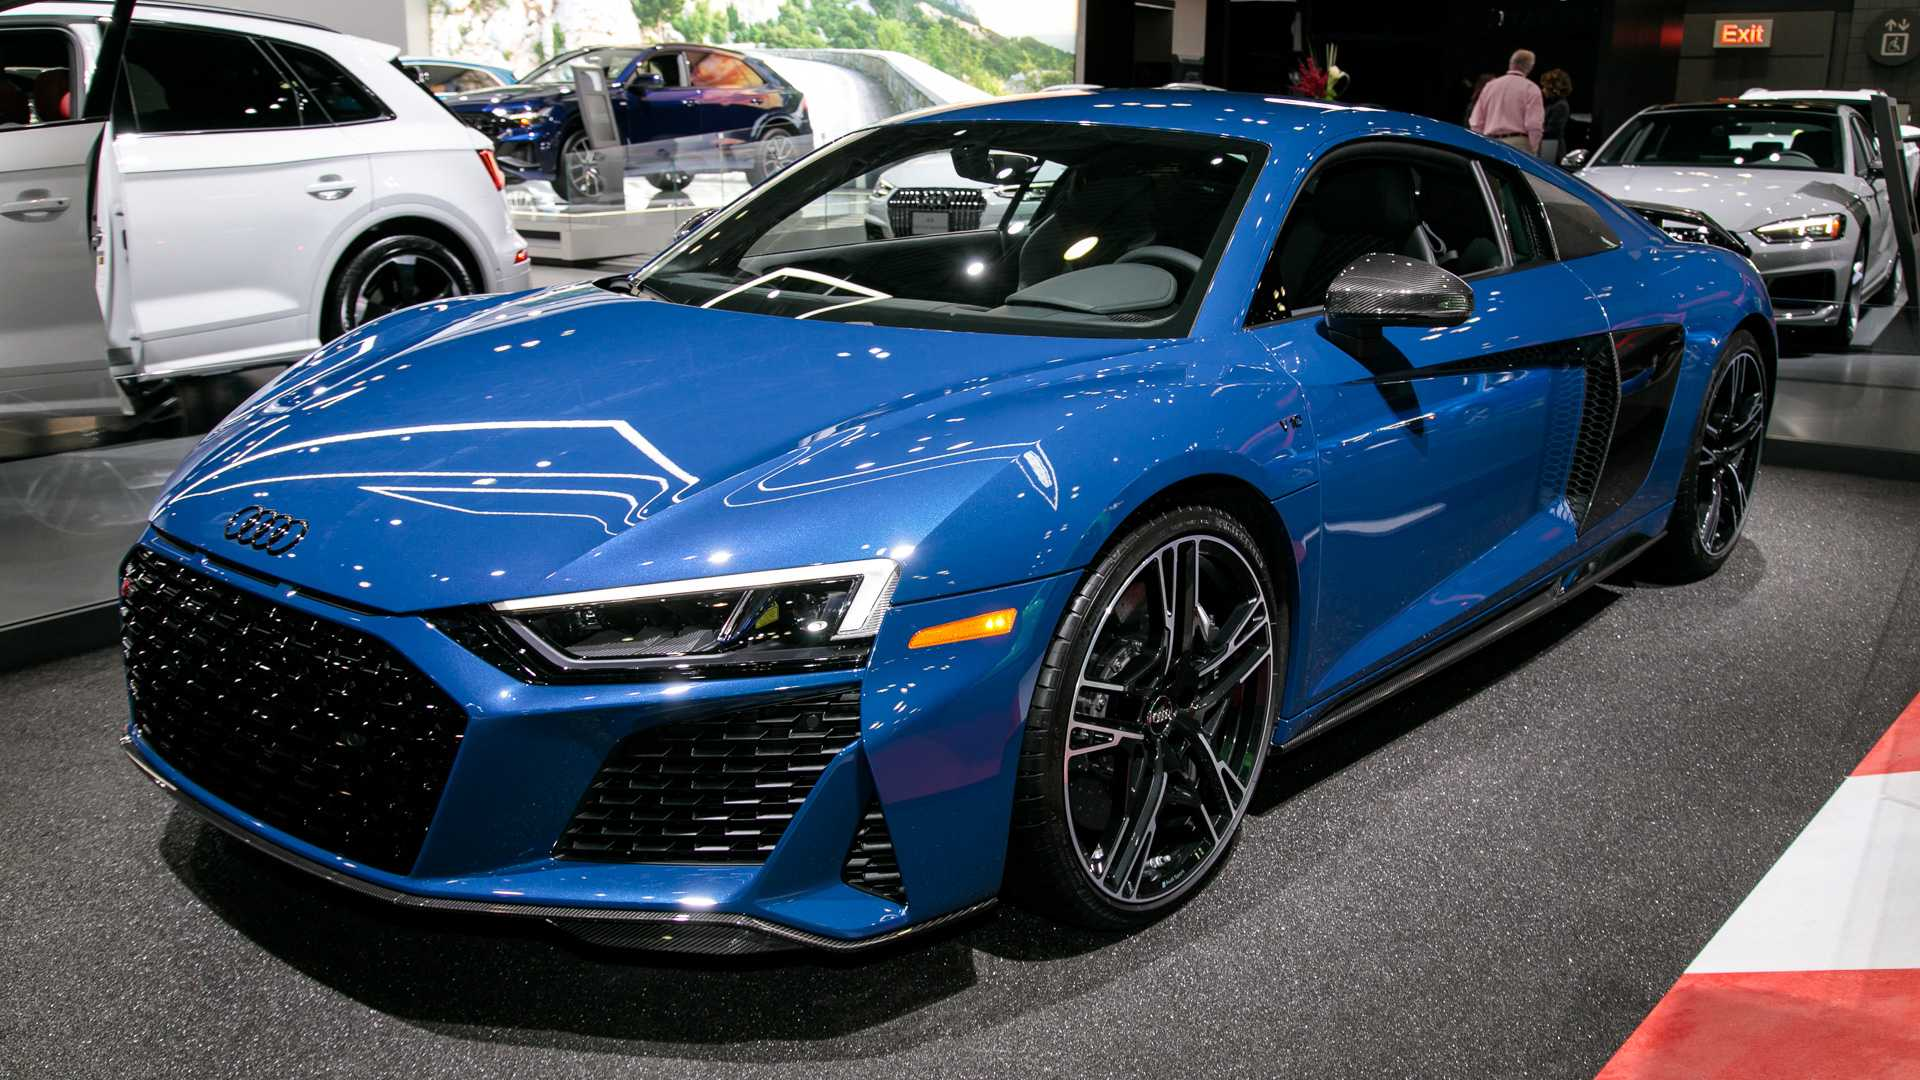 68 New Audi R8 V10 2020 Redesign And Concept